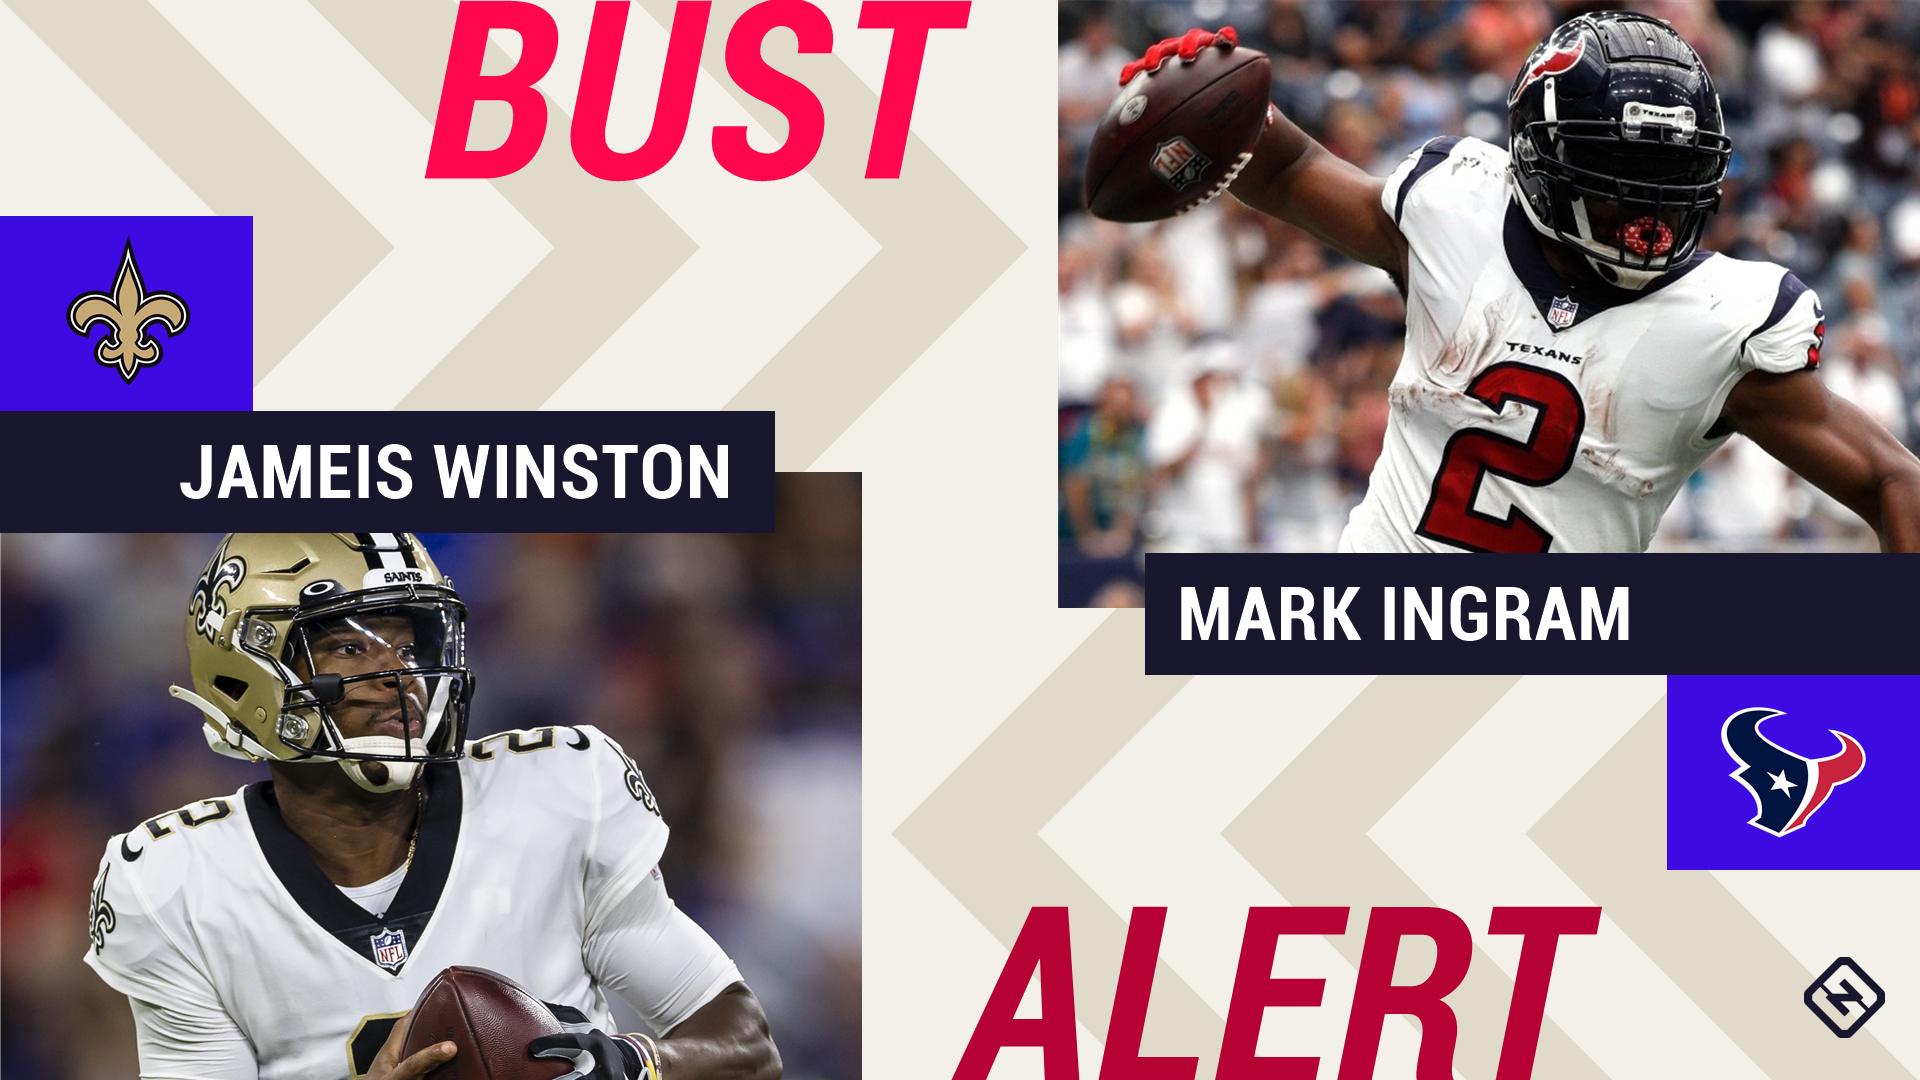 Week 2 Fantasy Busts: Jameis Winston, Mark Ingram goes from hot waiver pickups to potential busts...